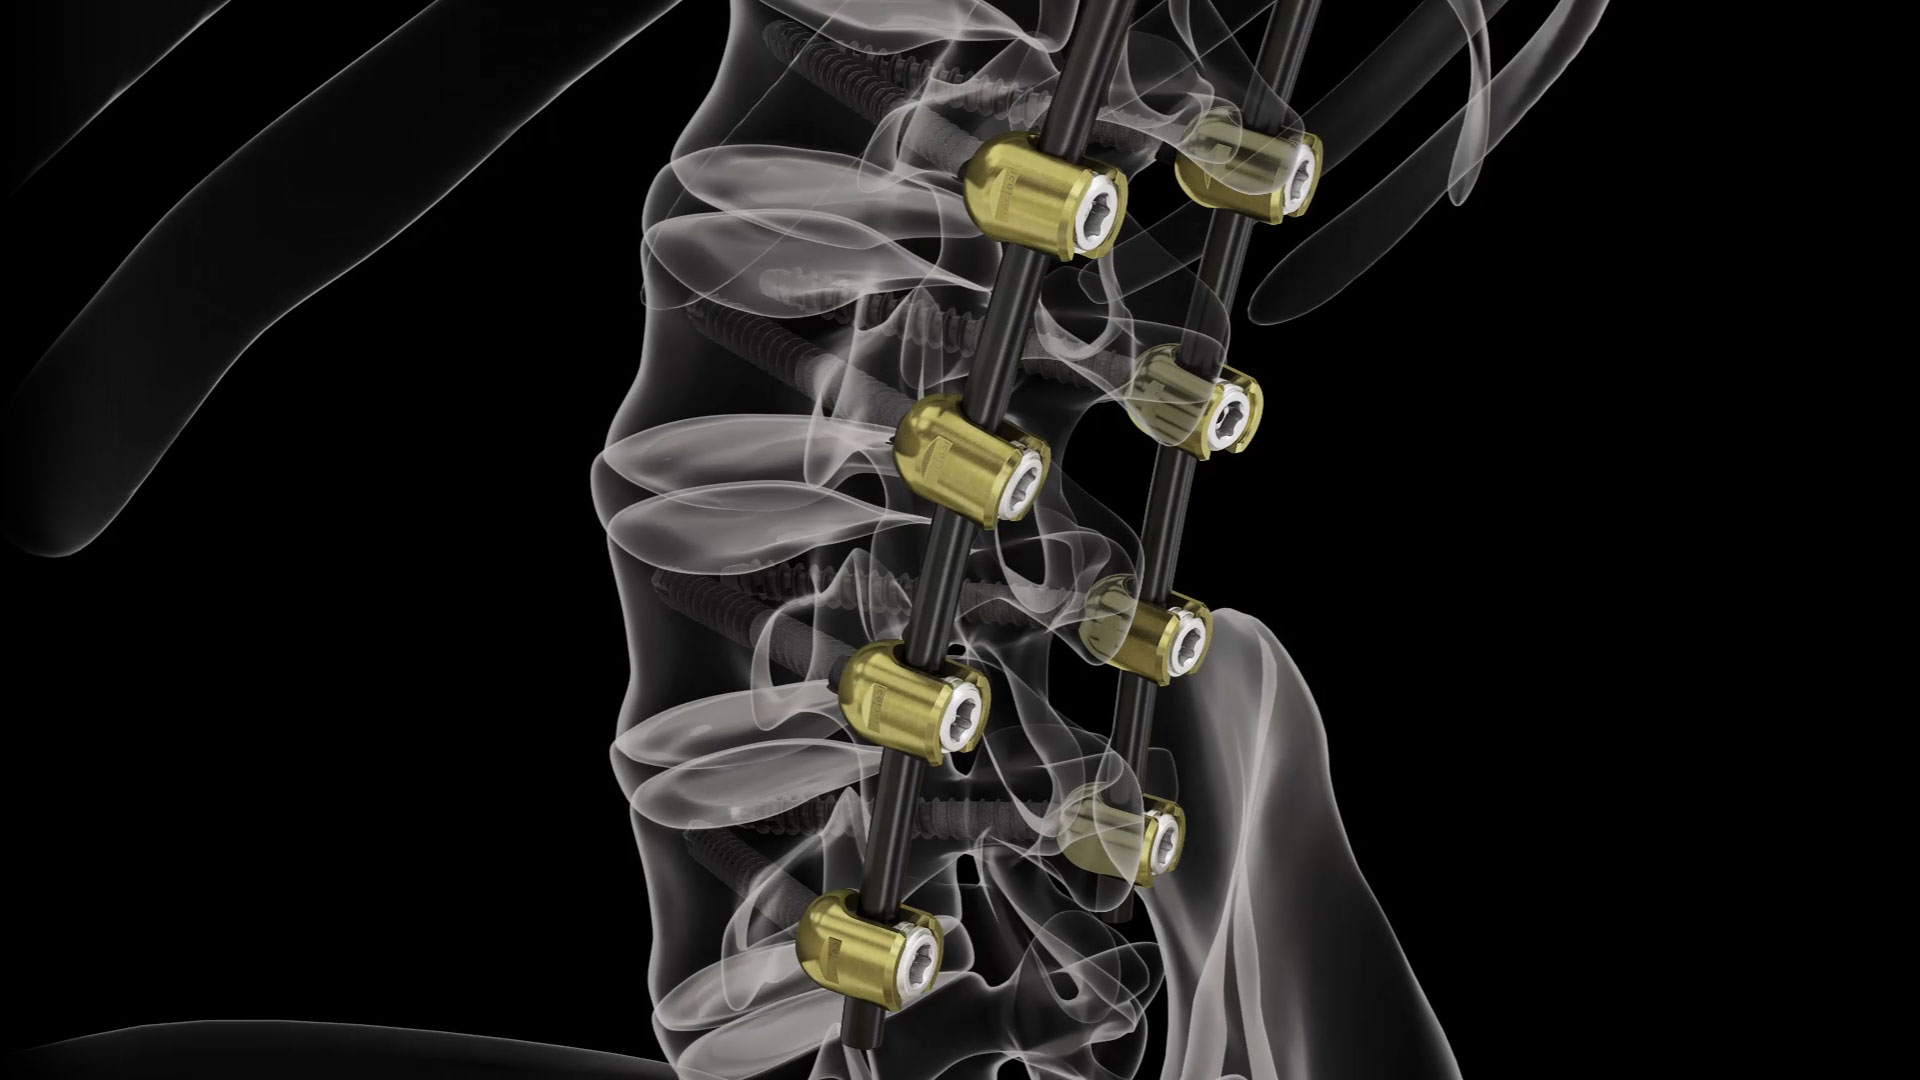 Implants for spine treatment | BlackArmor® by icotec